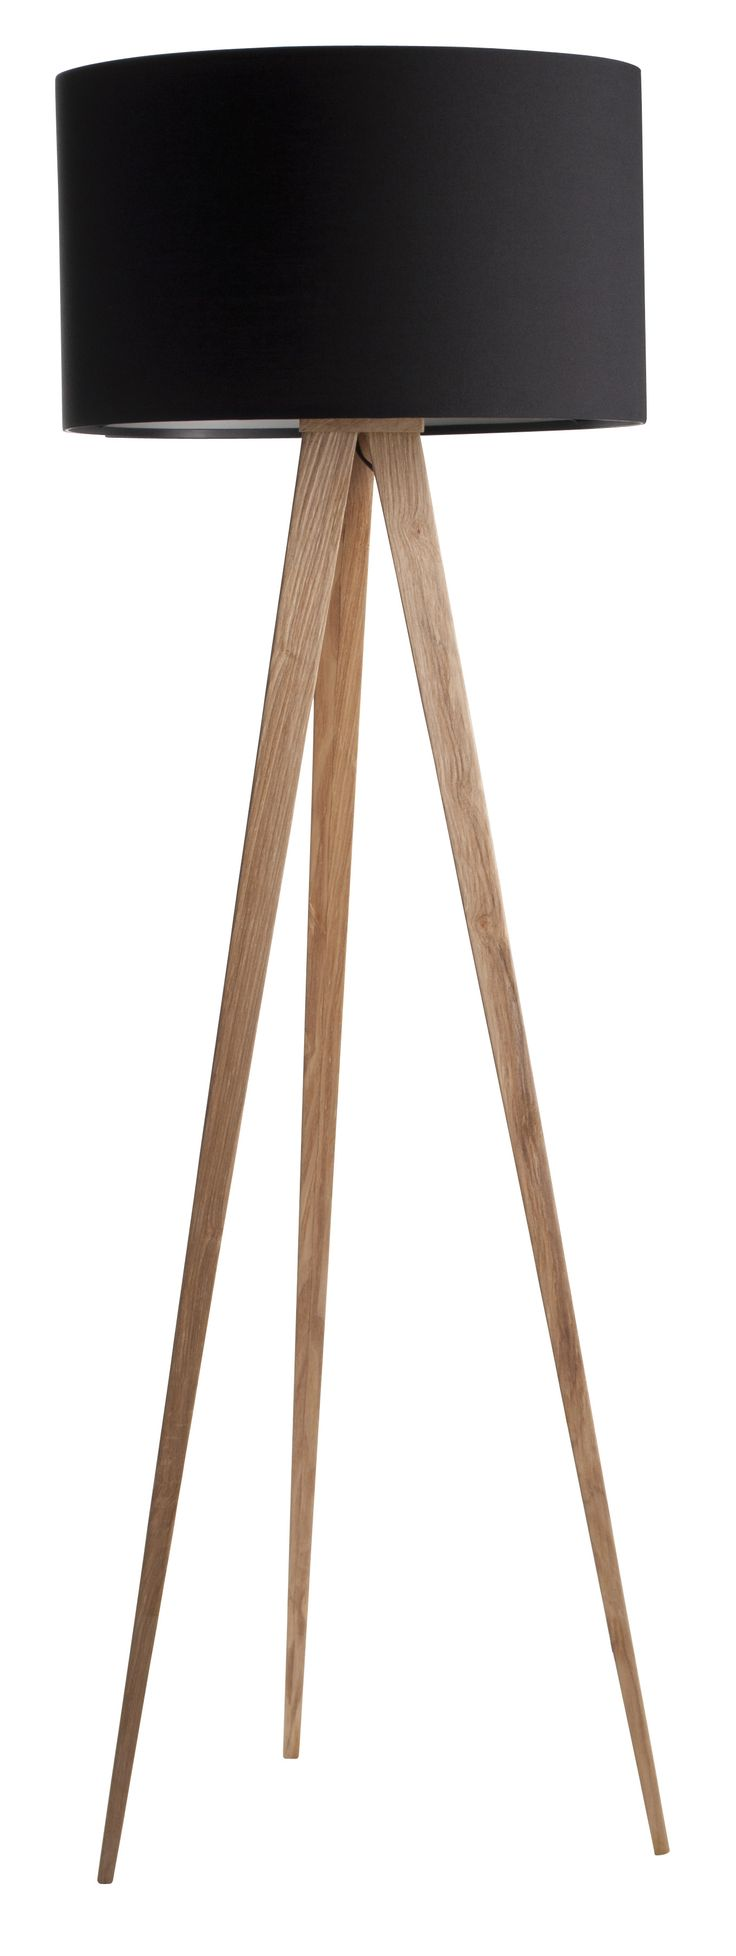 Tripod Wood floor lamp - Zuiver